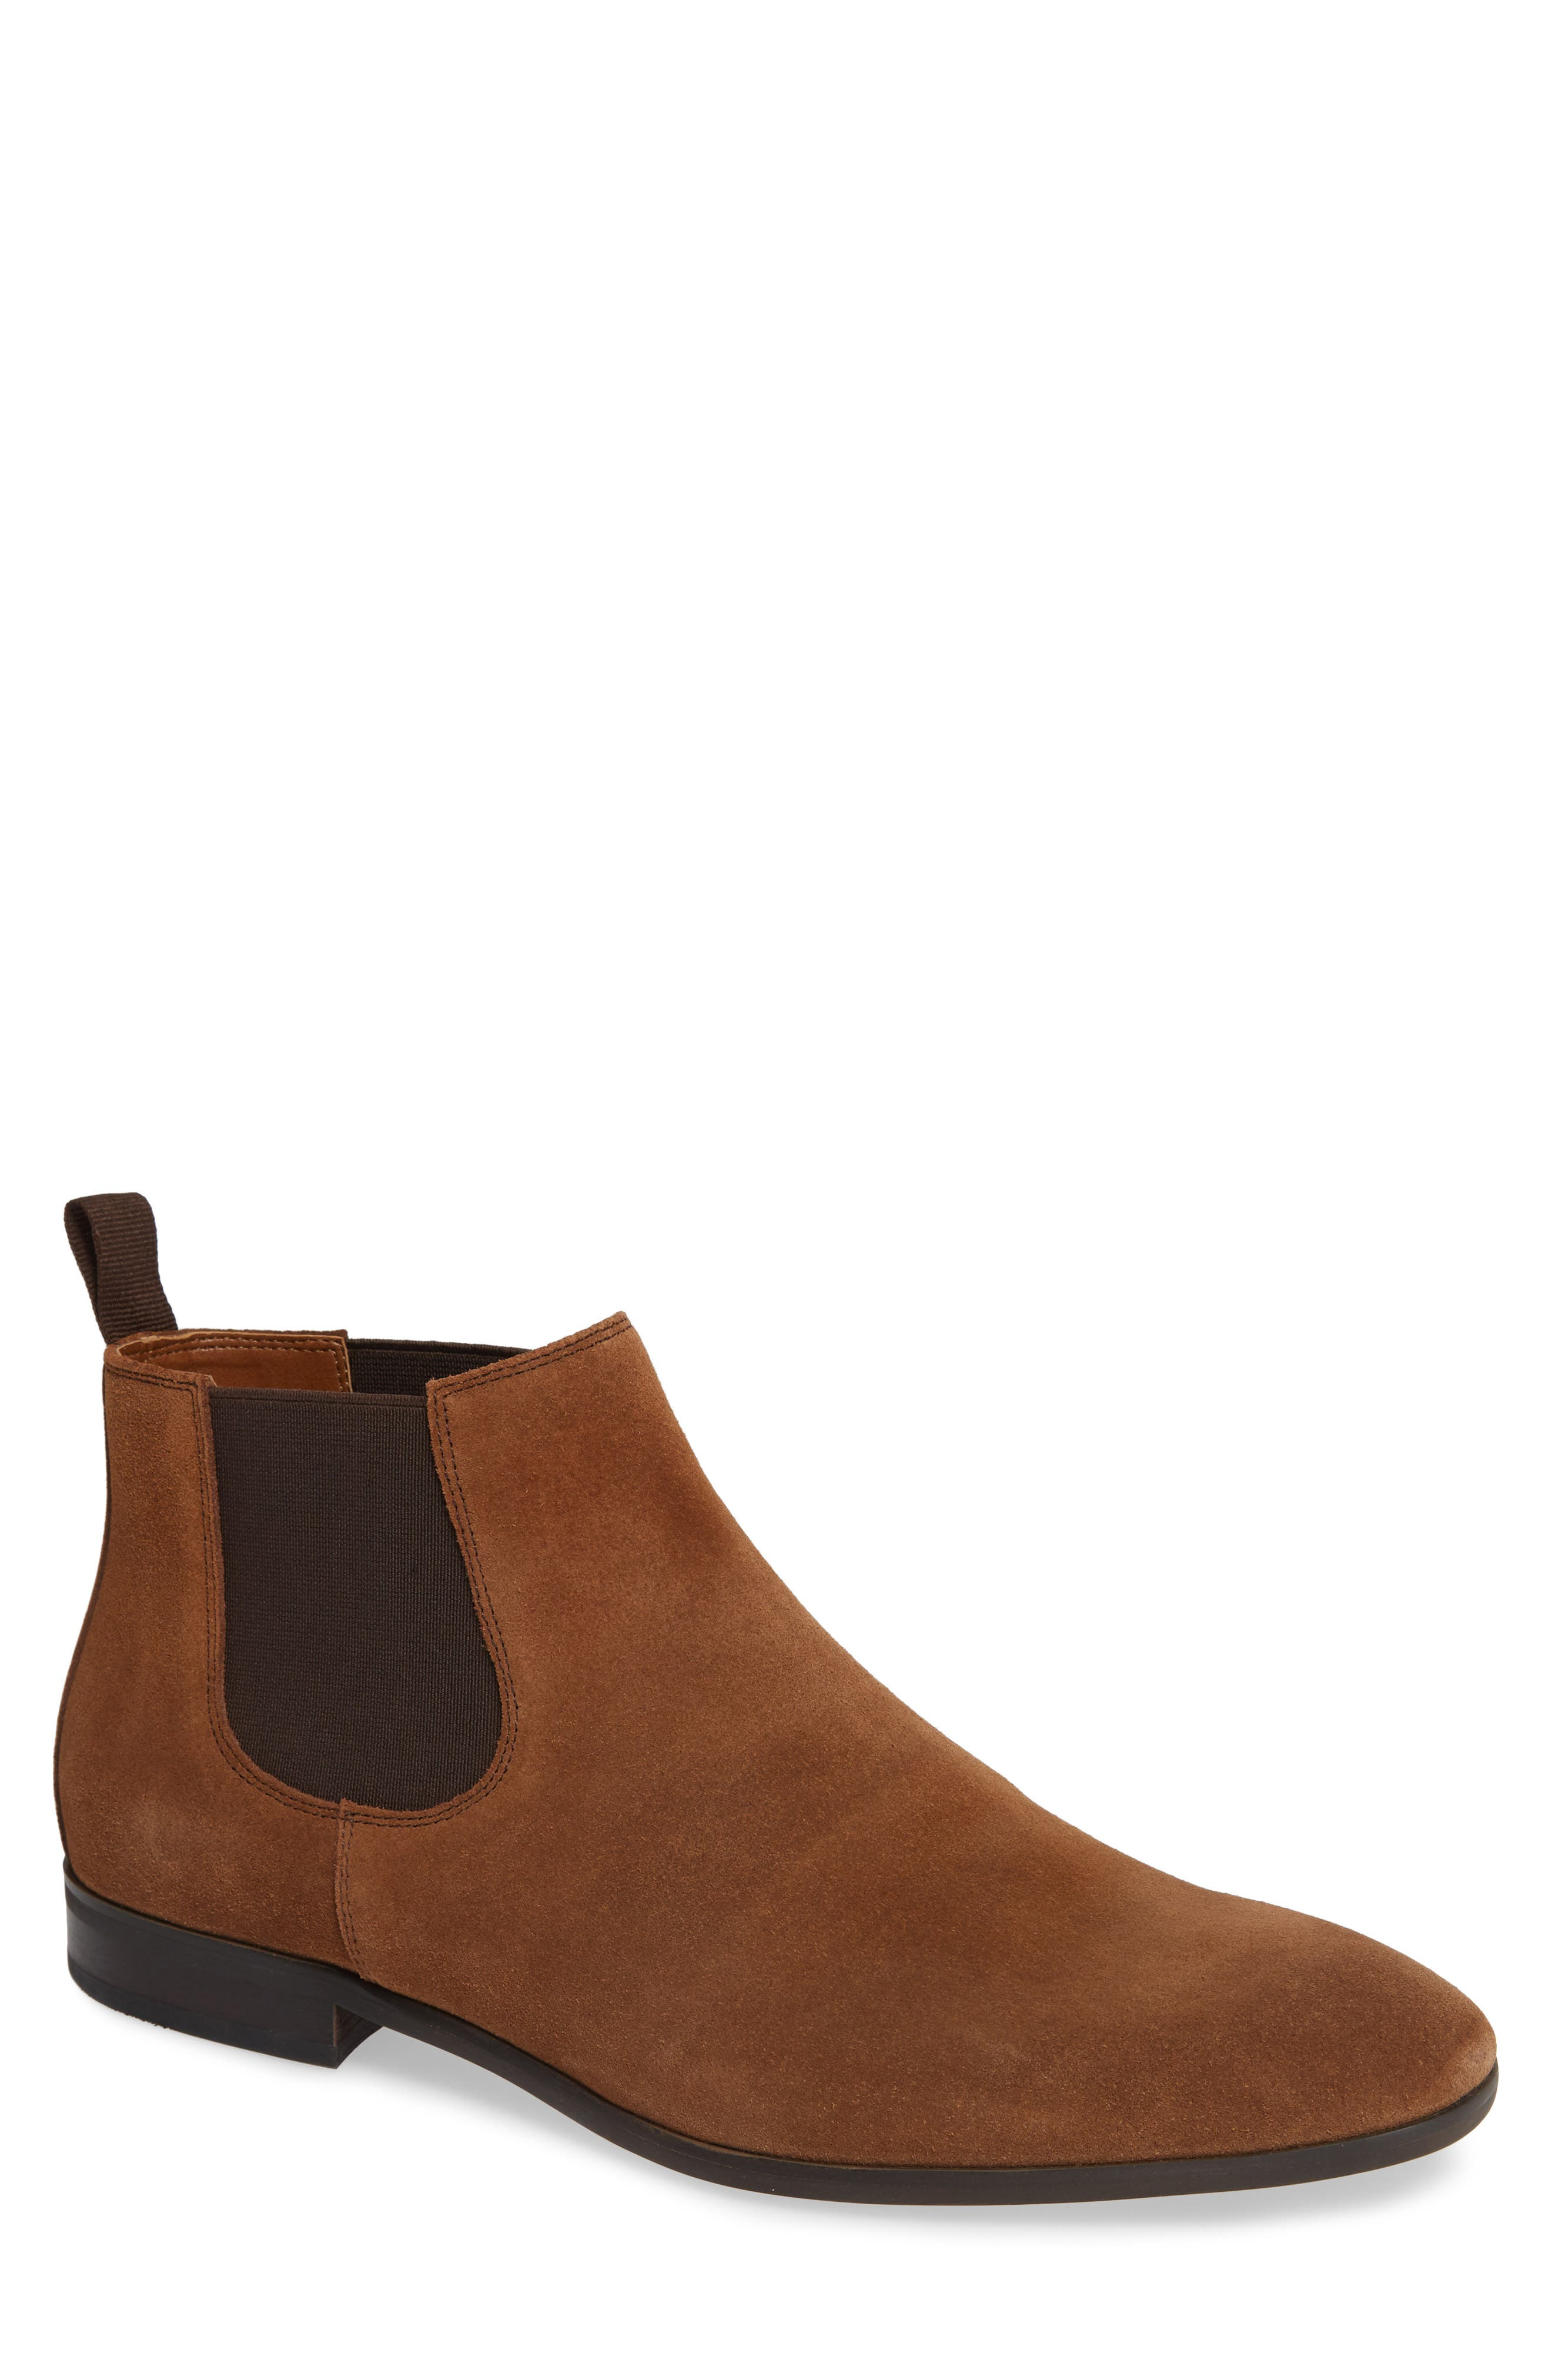 Edward Chelsea Boot,                         Main,                         color, CHESTNUT SUEDE